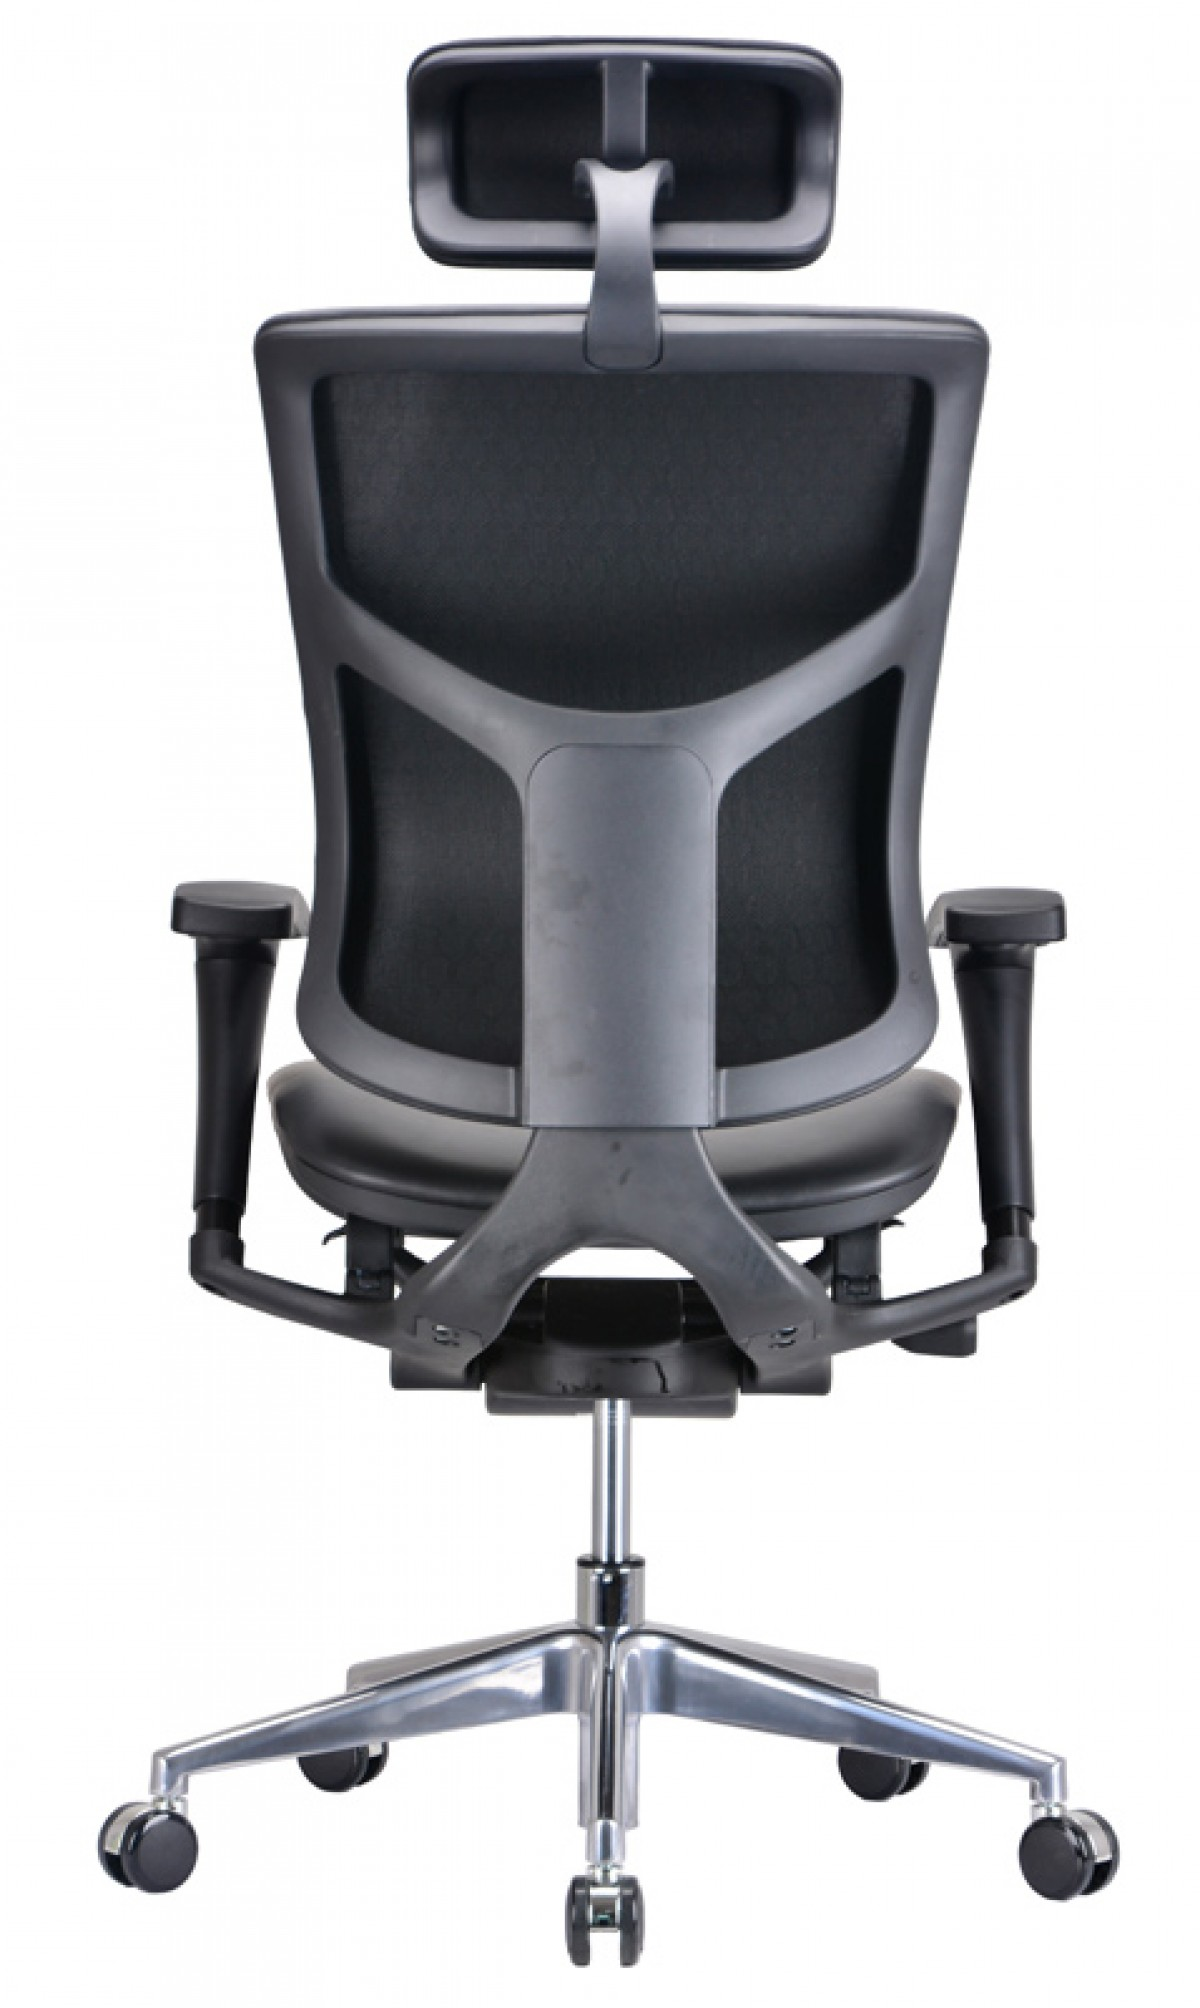 Modern leather office chair - Modrest Watson Modern Black Leather Office Chair Office Chairs Office